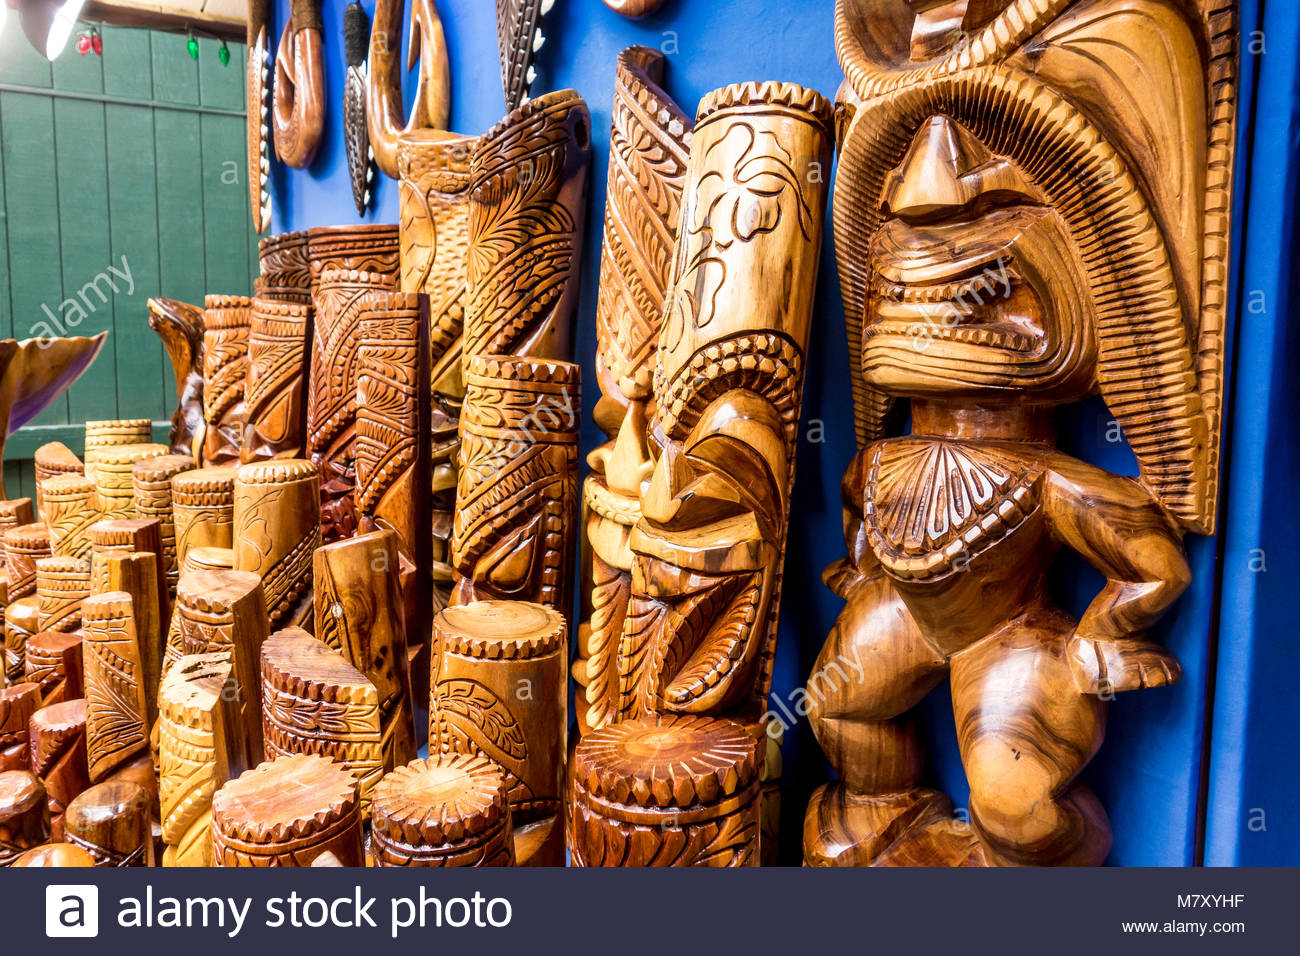 Tiki Hawaiian culture statues for sale in Lahaina on the island of Maui in the State of Hawaii USA - Stock Image